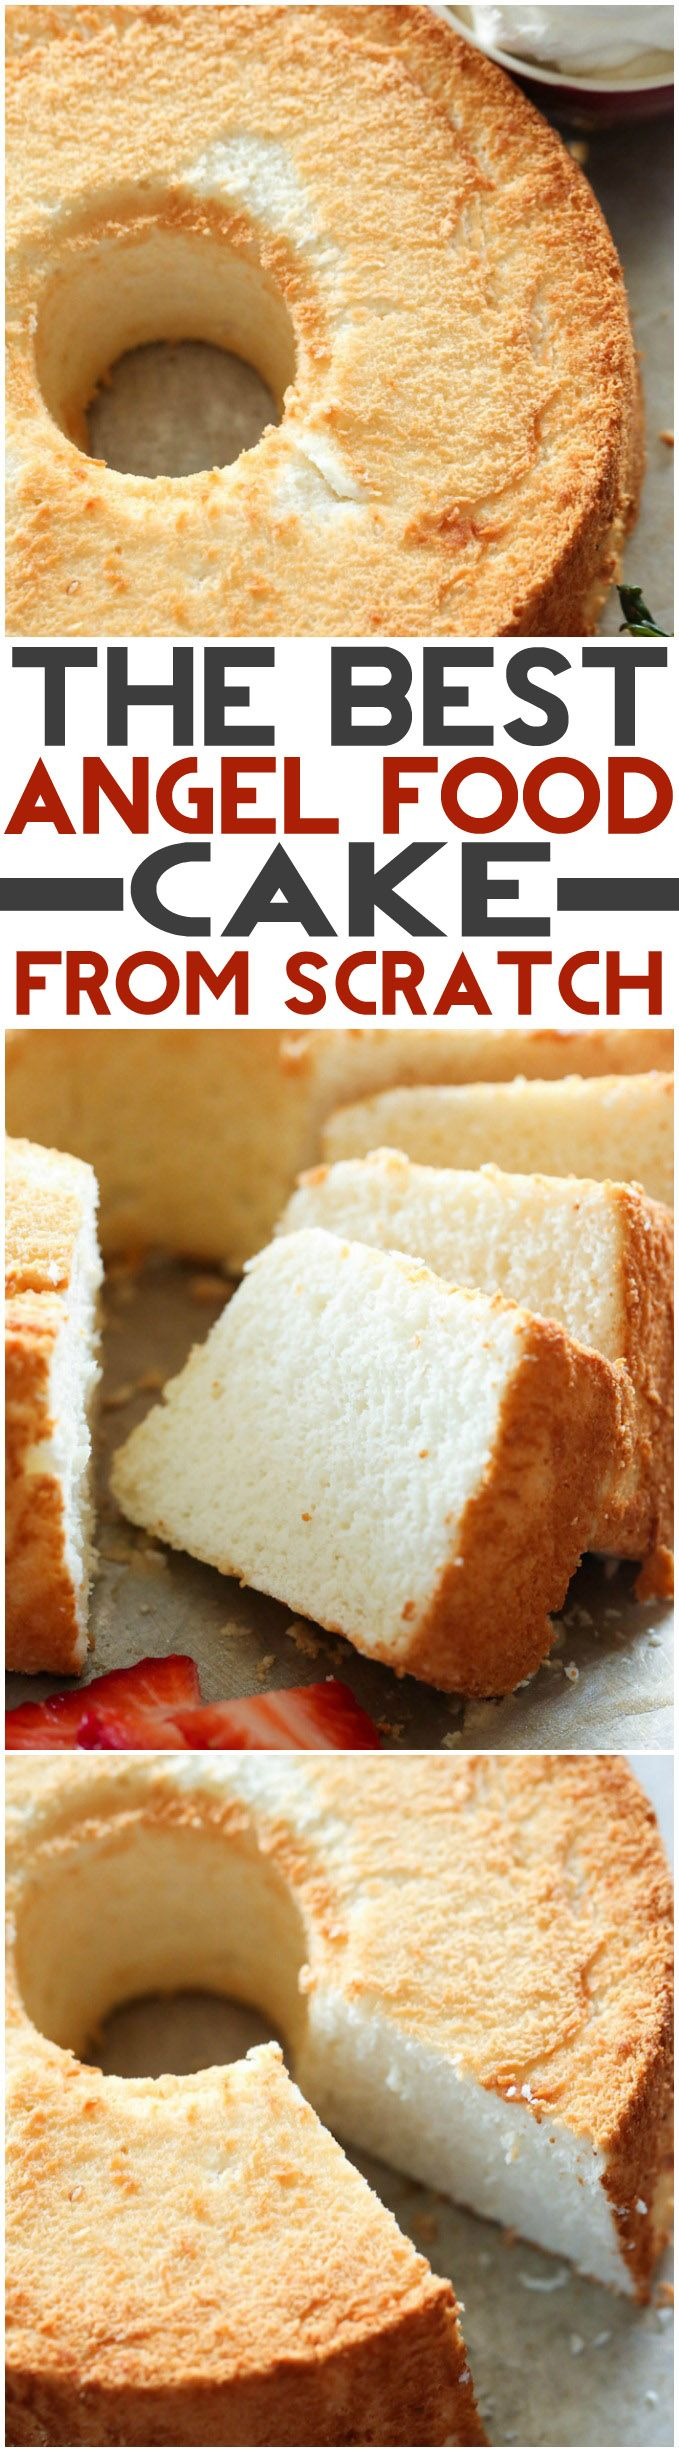 THE BEST Angel Food Cake from Scratch ~ This cake has the most perfect texture and flavor... Once you make this, it will become your new favorite!